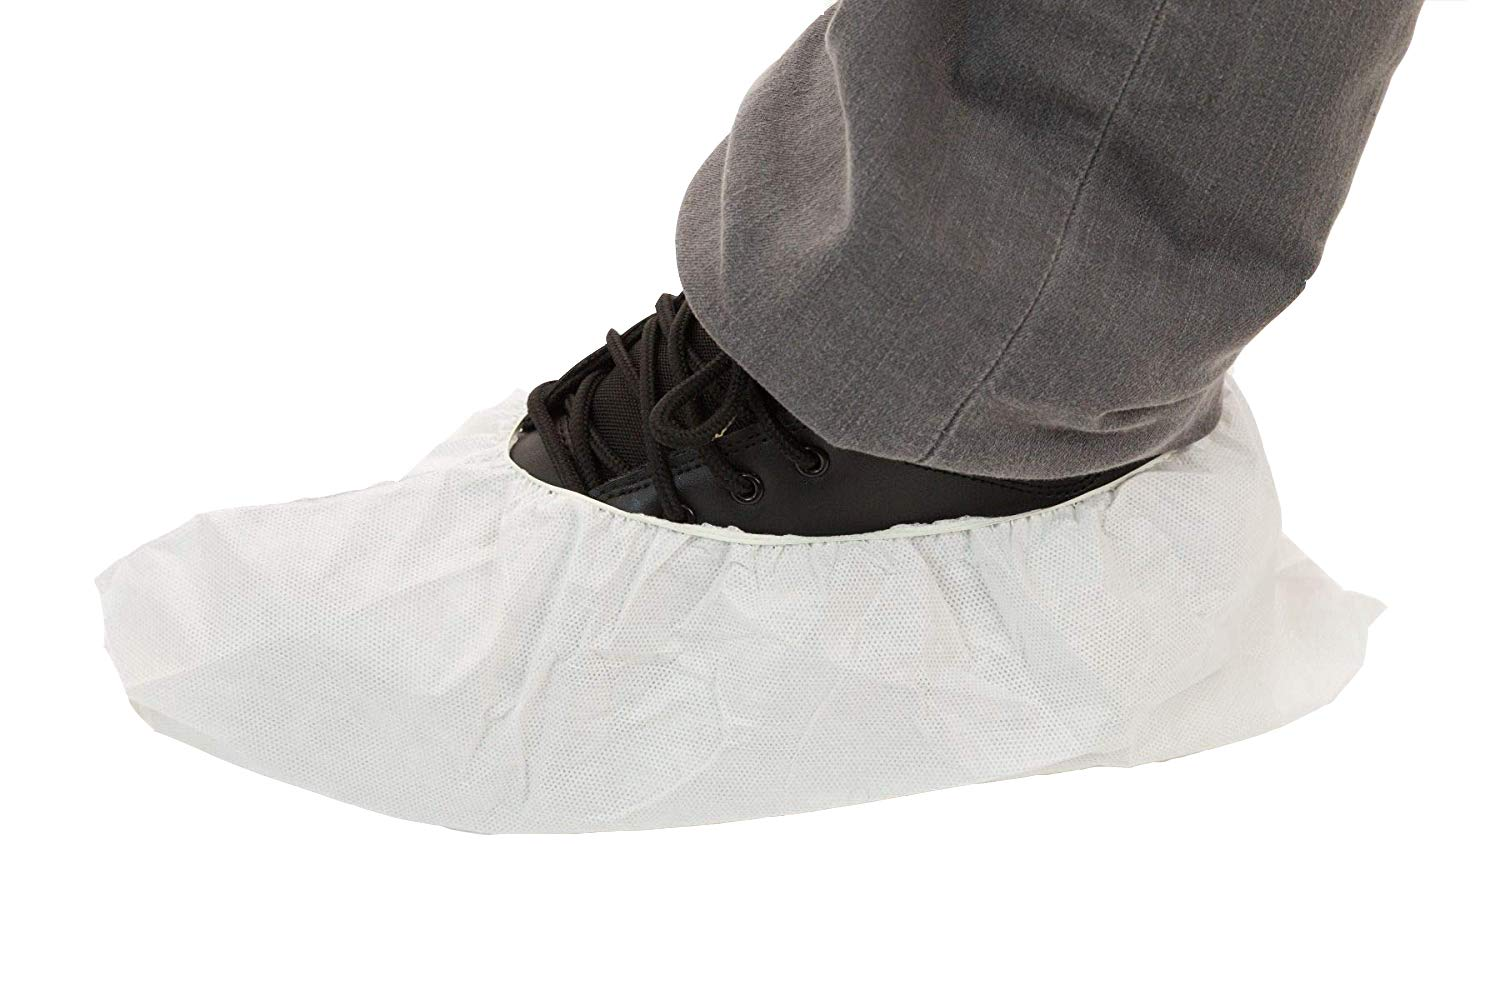 Body Filter 95+ Disposable Shoe Covers (White) | Breathable Cool Material - Protective Body Suit for Dust, Spray Paint, Insulation, and More (Case of 200) by BODY FILTER 95+